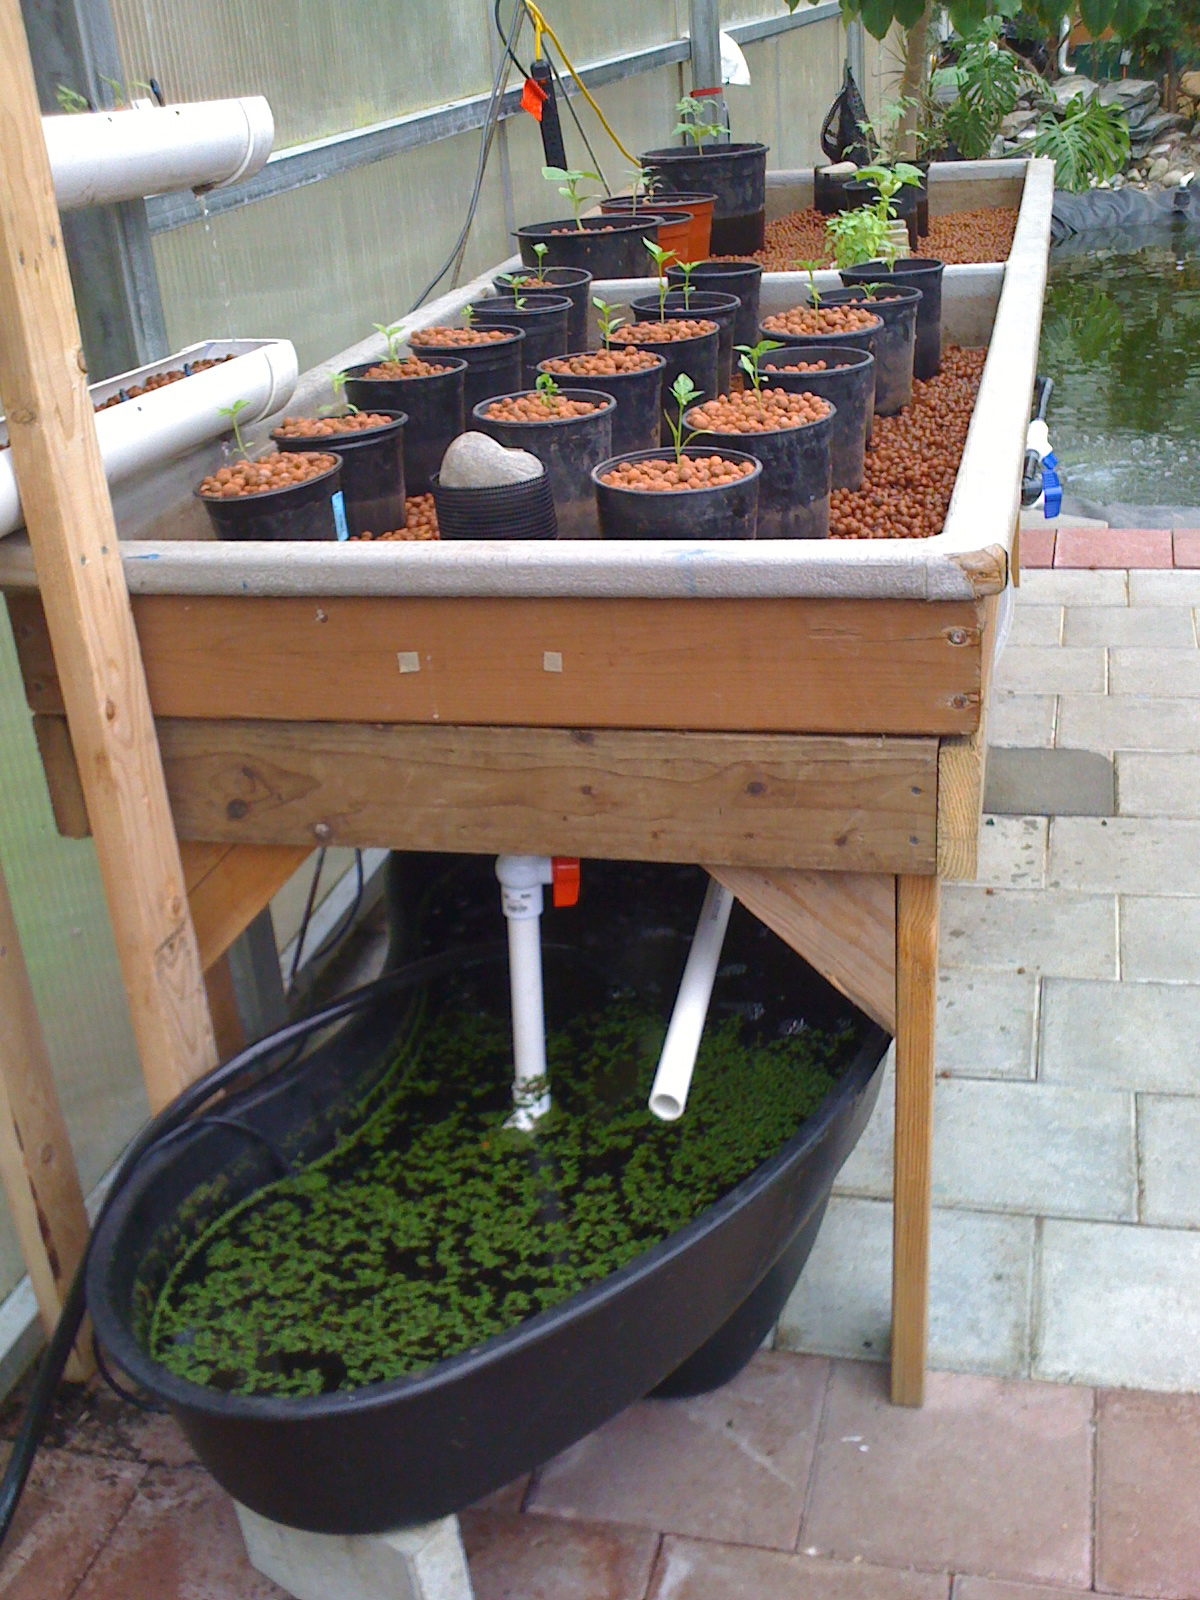 Hydroponics blog healthier food new aquaponics system for Hydroponic grow bed